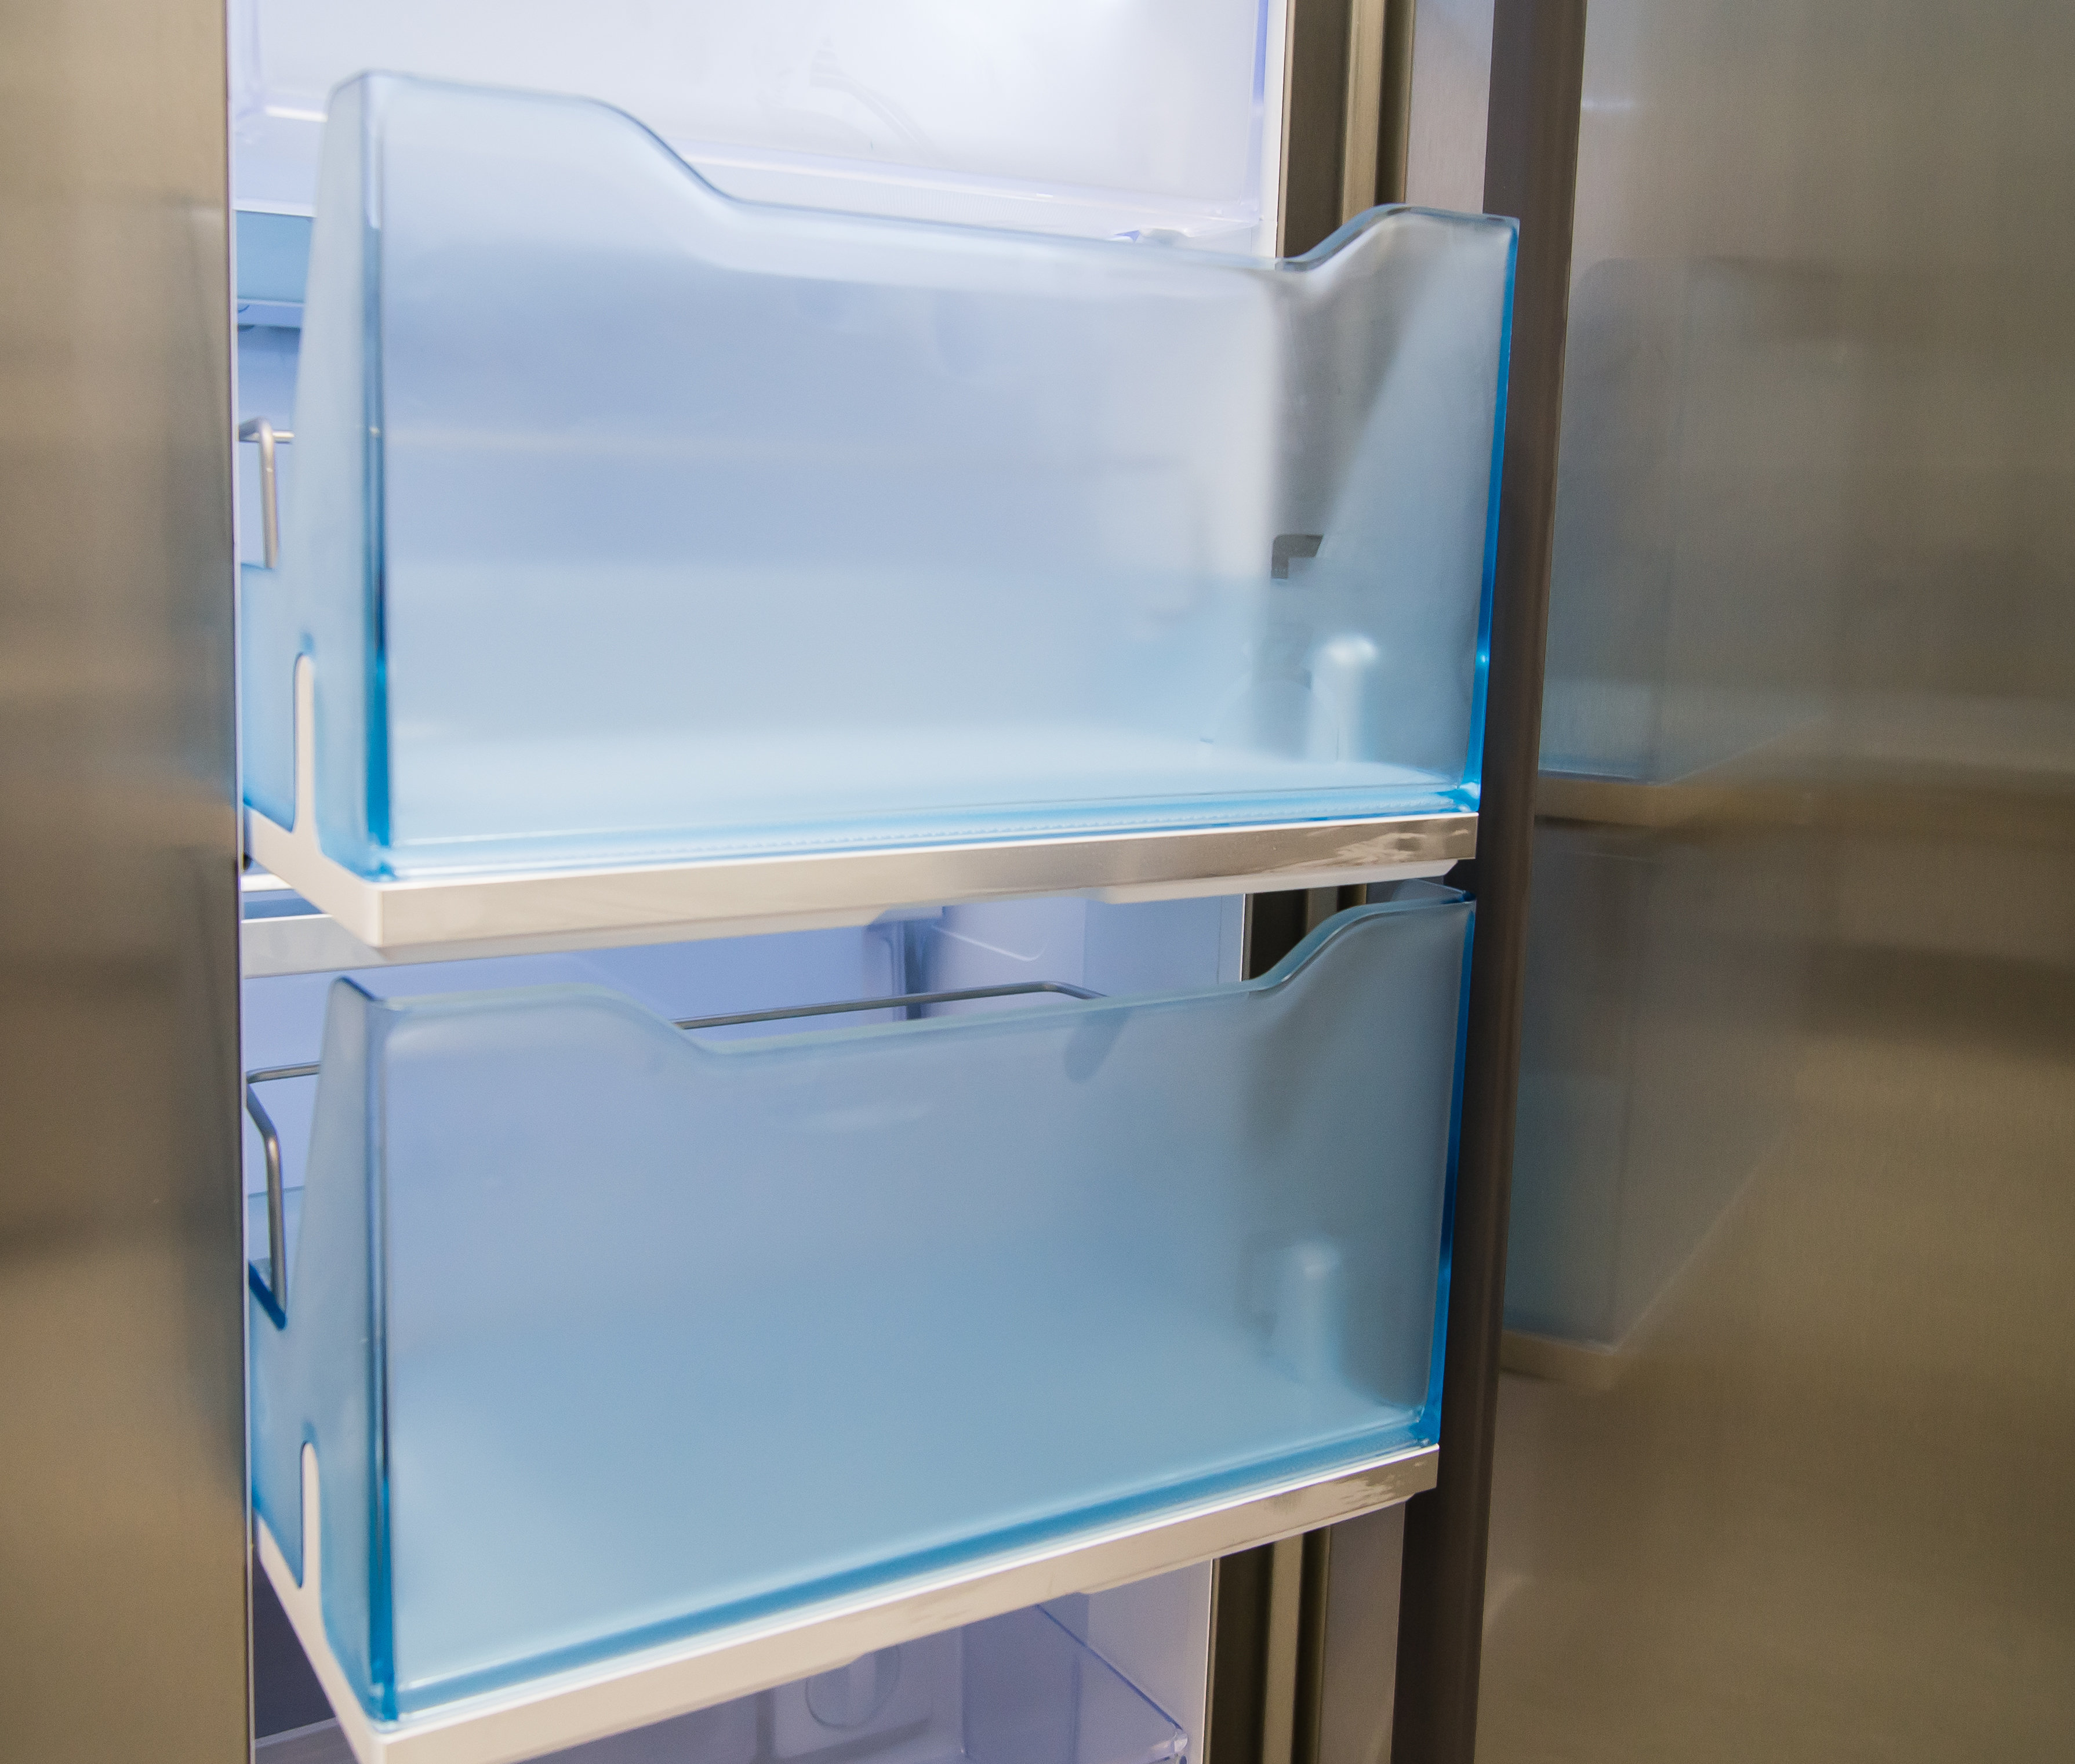 The Samsung RH29H9000SR Food Showcase's lower door-in-door buckets slide out like drawers.